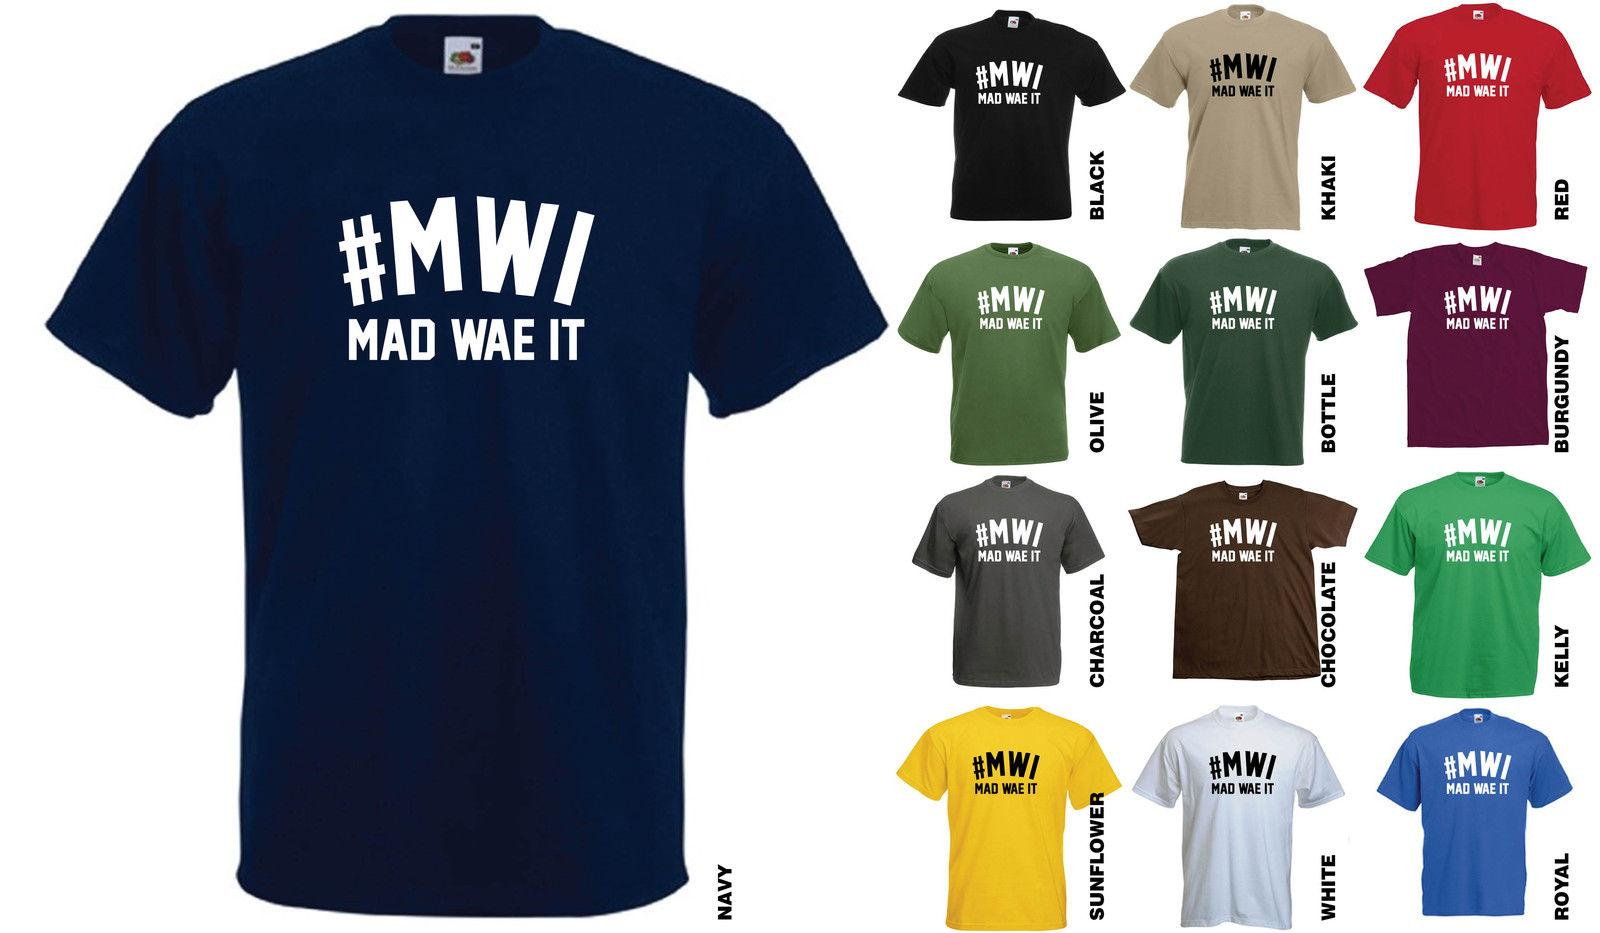 #MWI MAD WAE IT T-SHIRT - SCOTTISH SLANG FUNNY PARTY STAG HEN MEN LADIES  HASHTAG Funny free shipping Unisex Casual Tshirt top